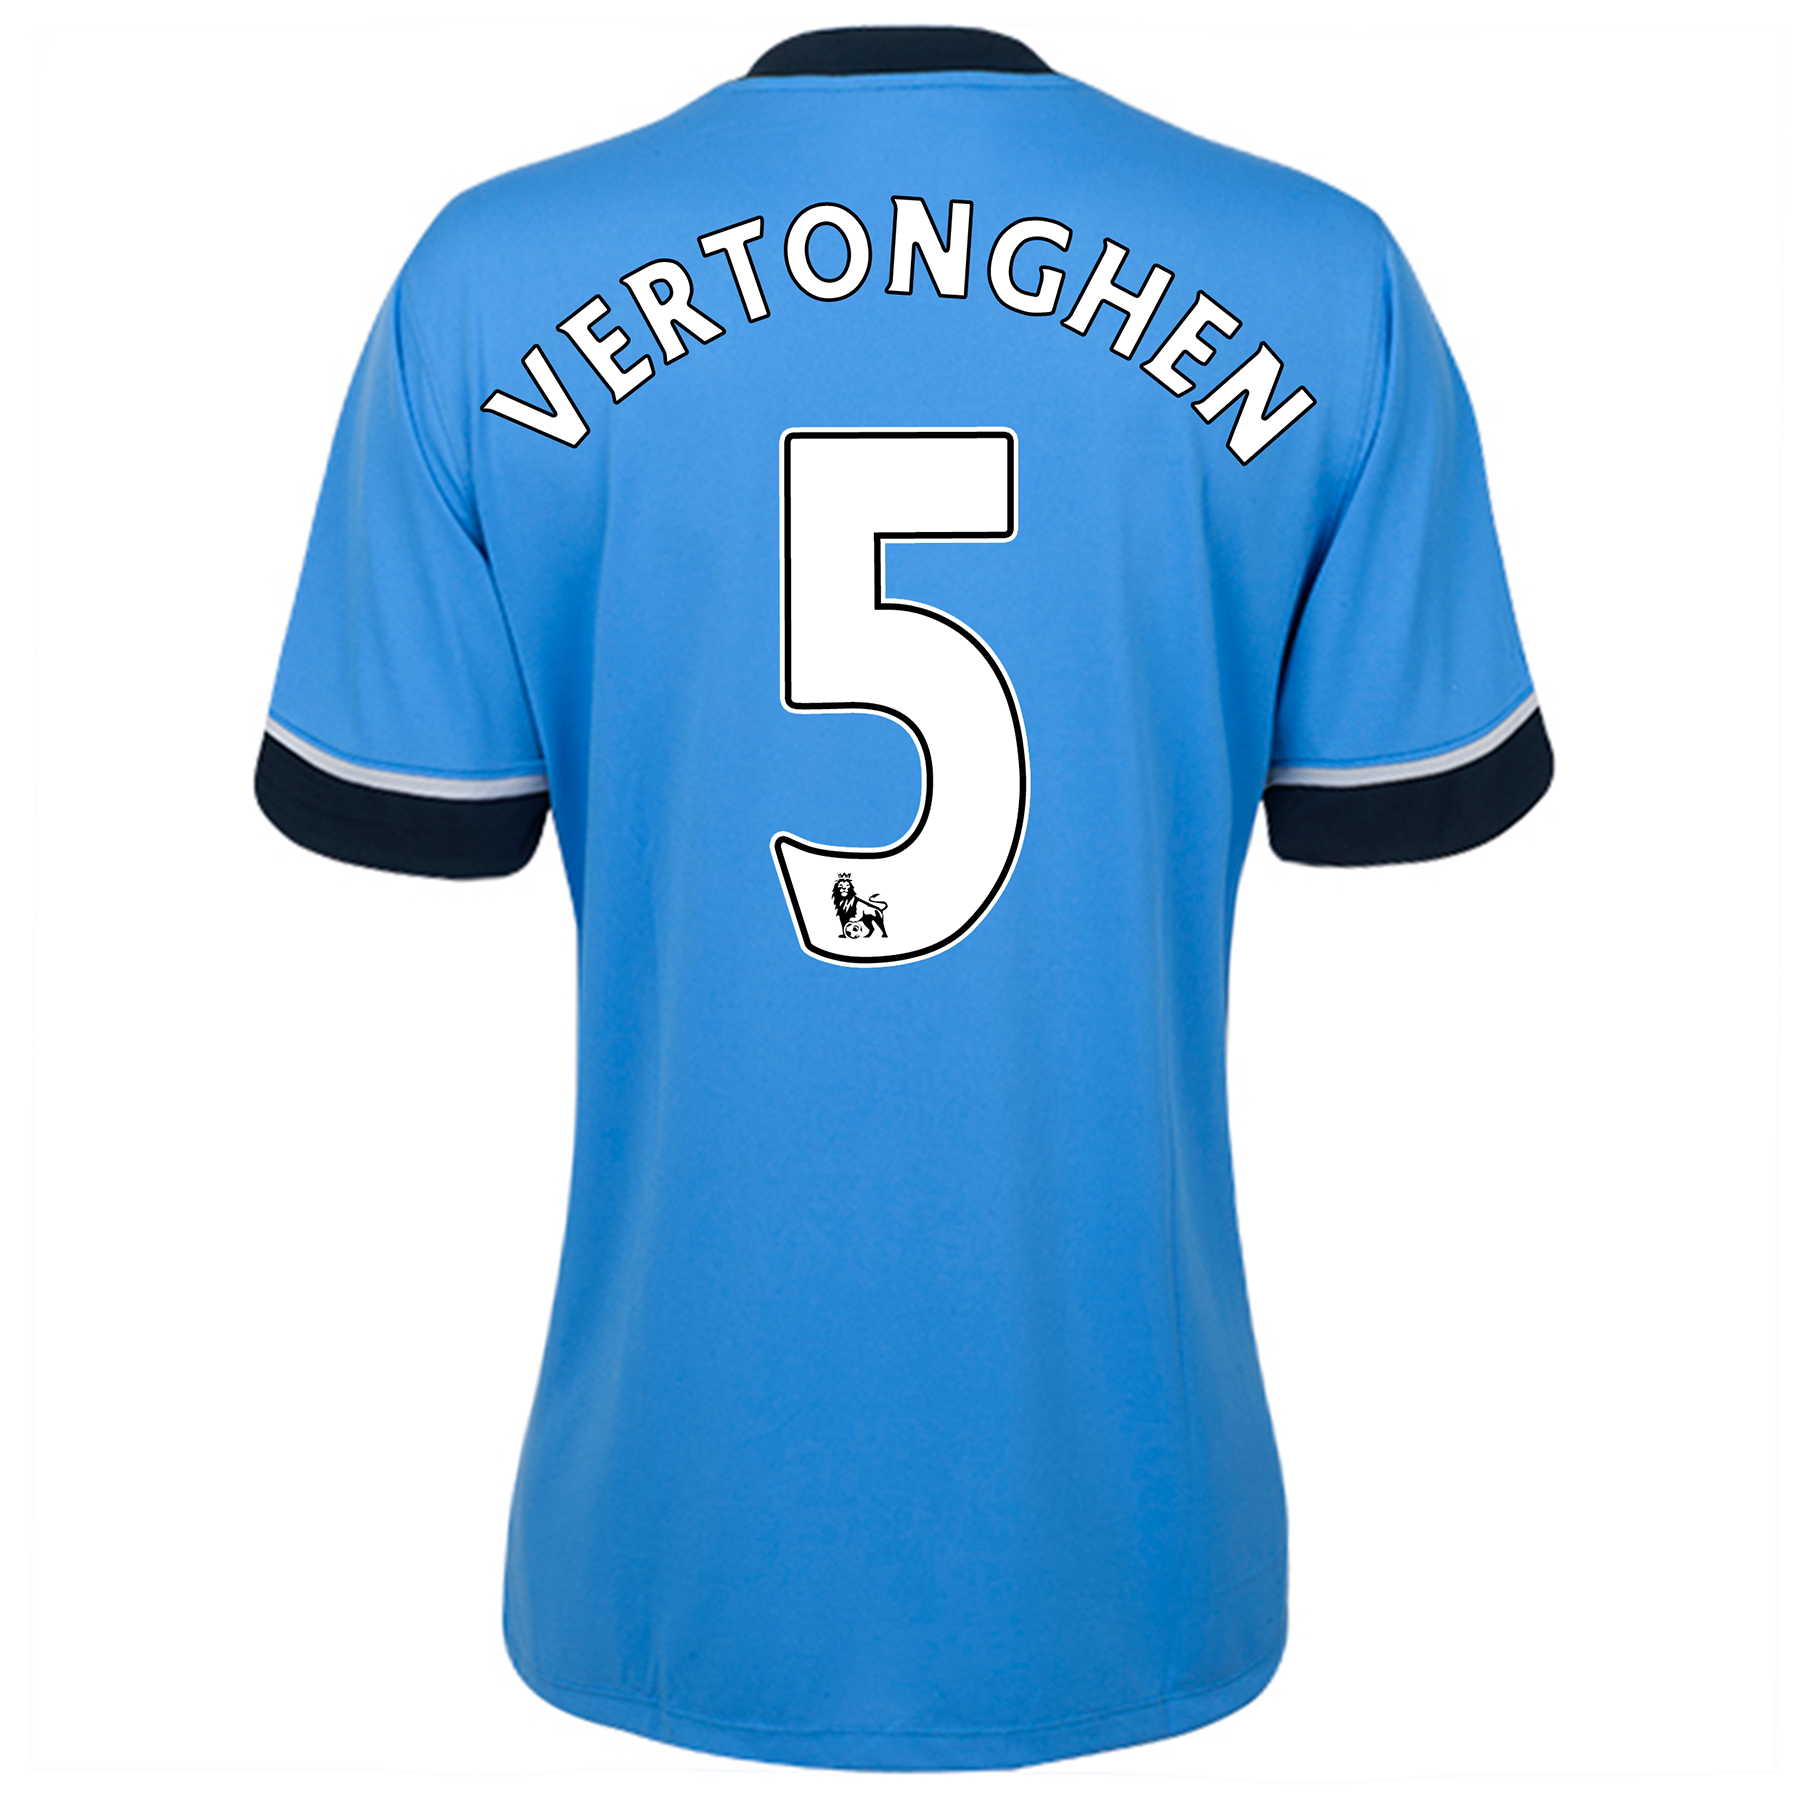 Tottenham Hotspur Away Shirt 2015/16 - Womens Sky Blue with Vertonghen 5 printing